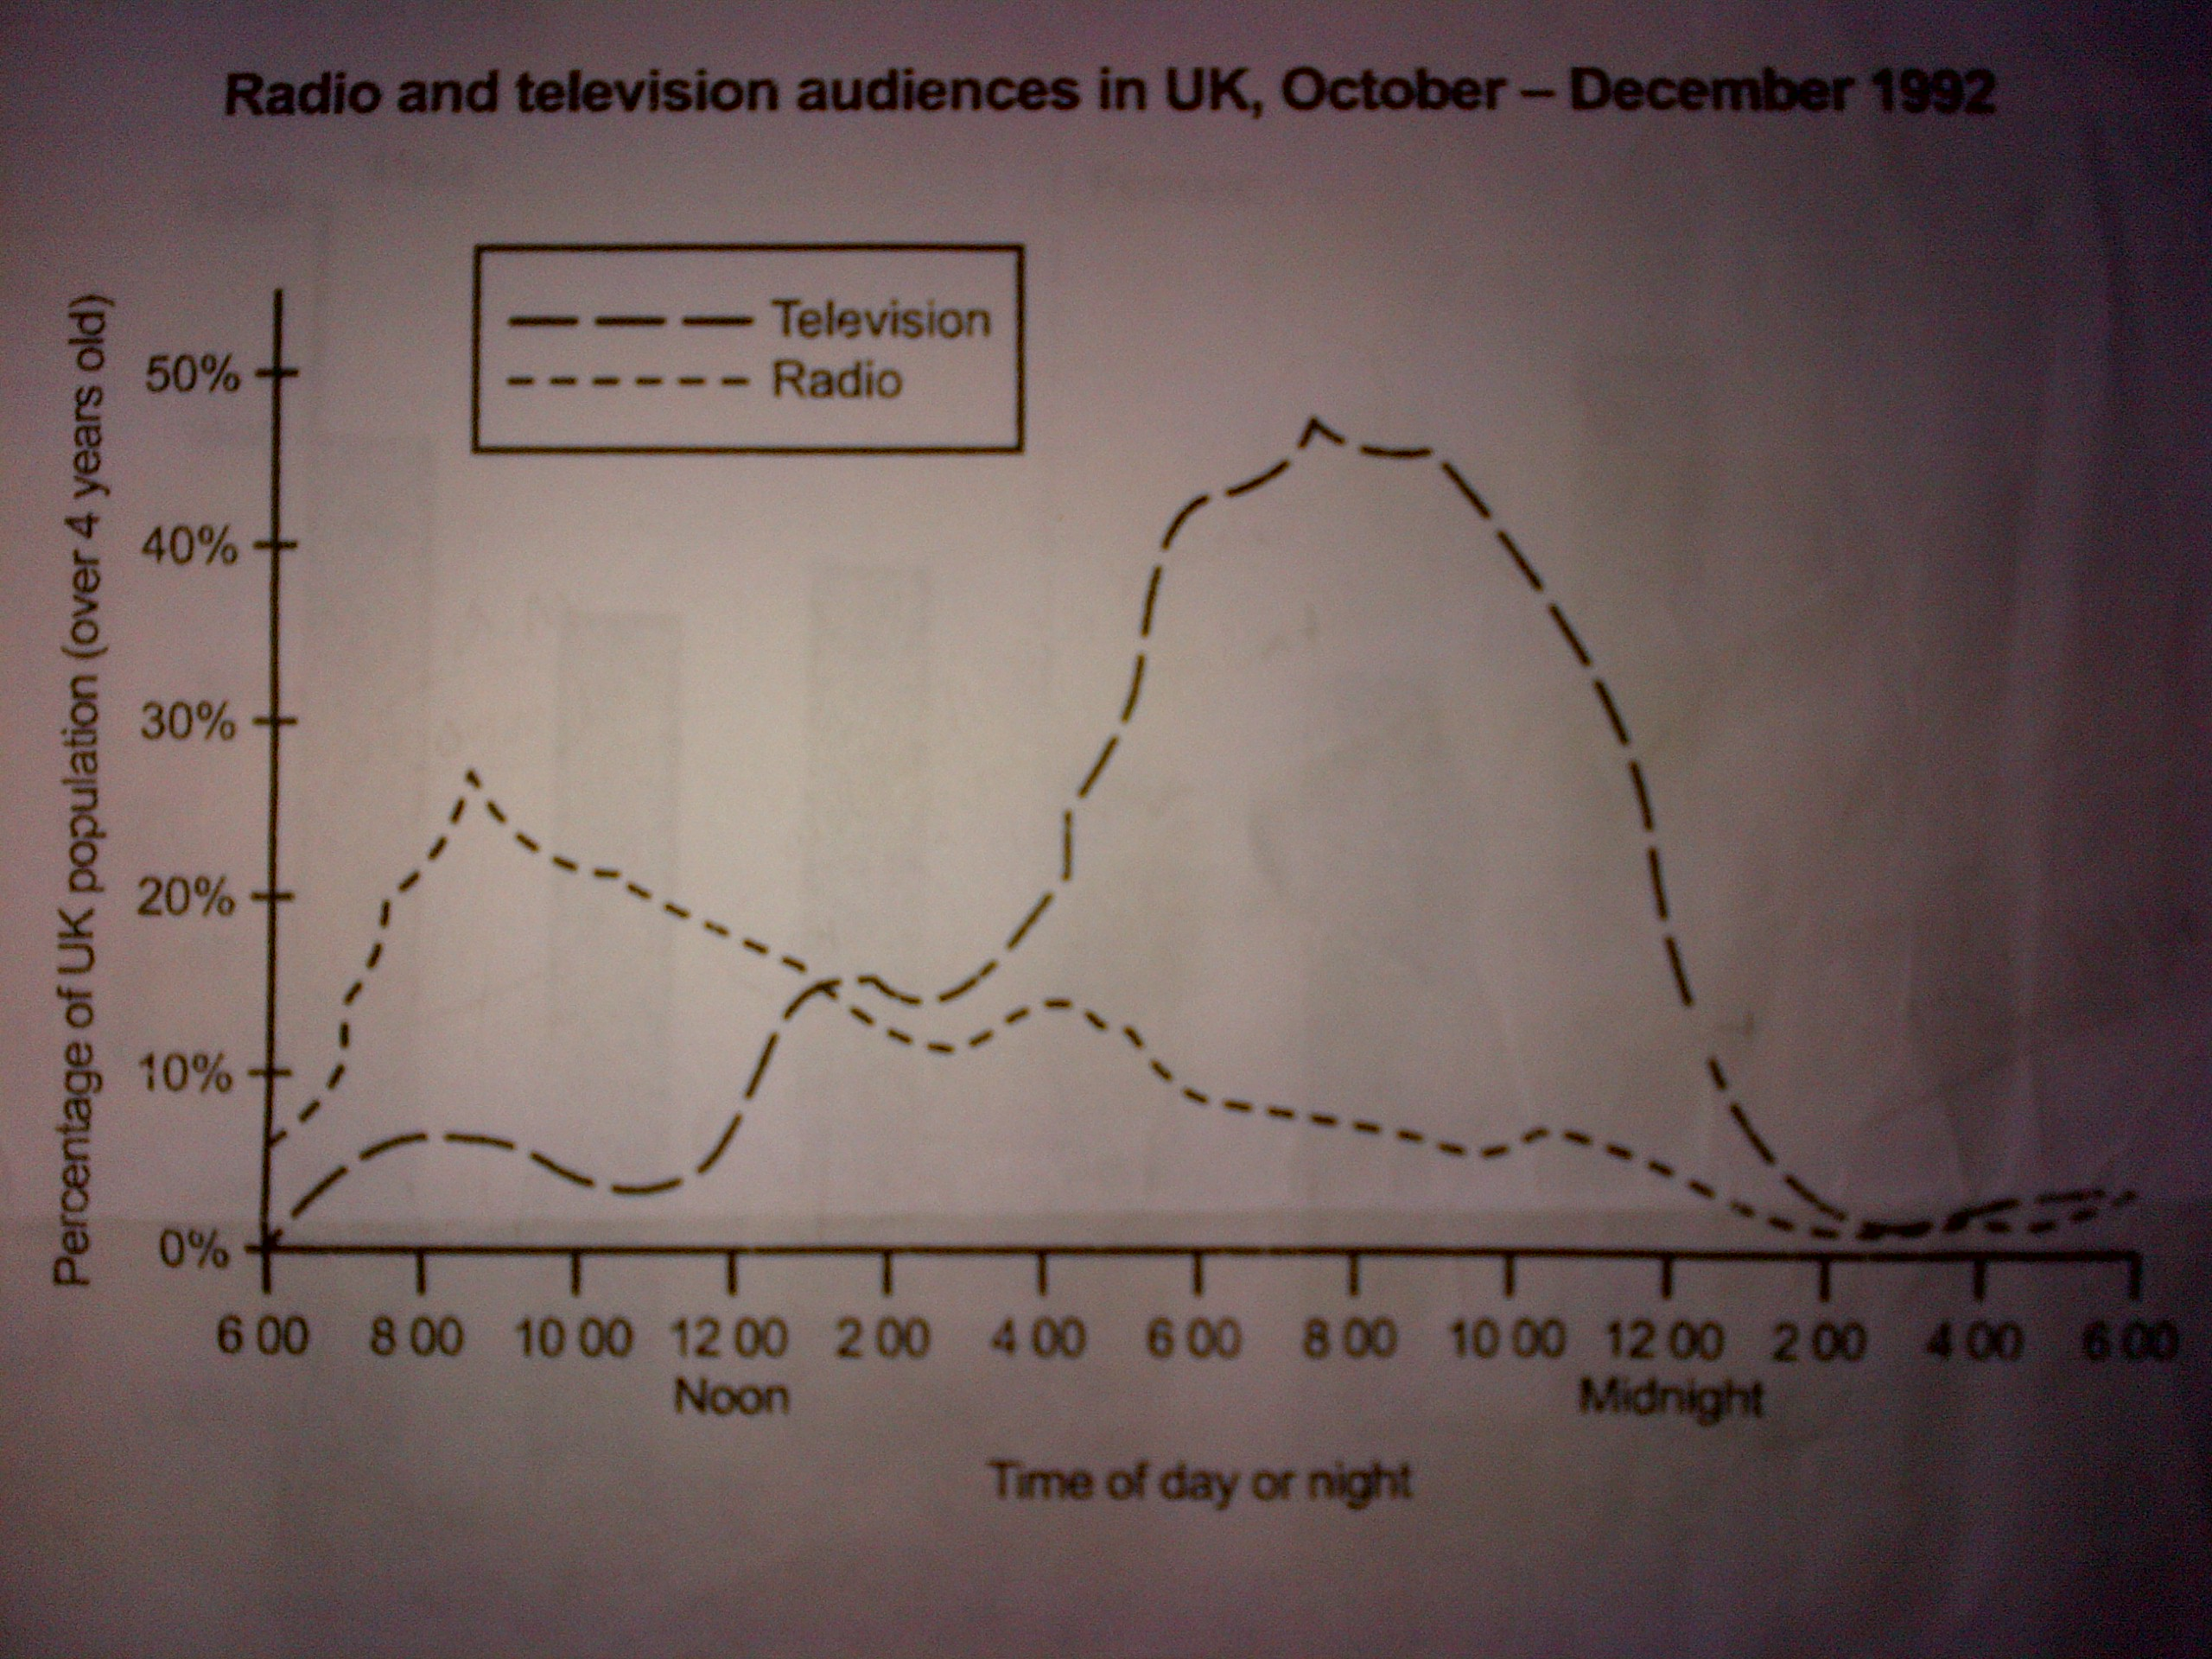 radio and television audiences in uk 1992 essay topics radio and television audiences in uk 1992